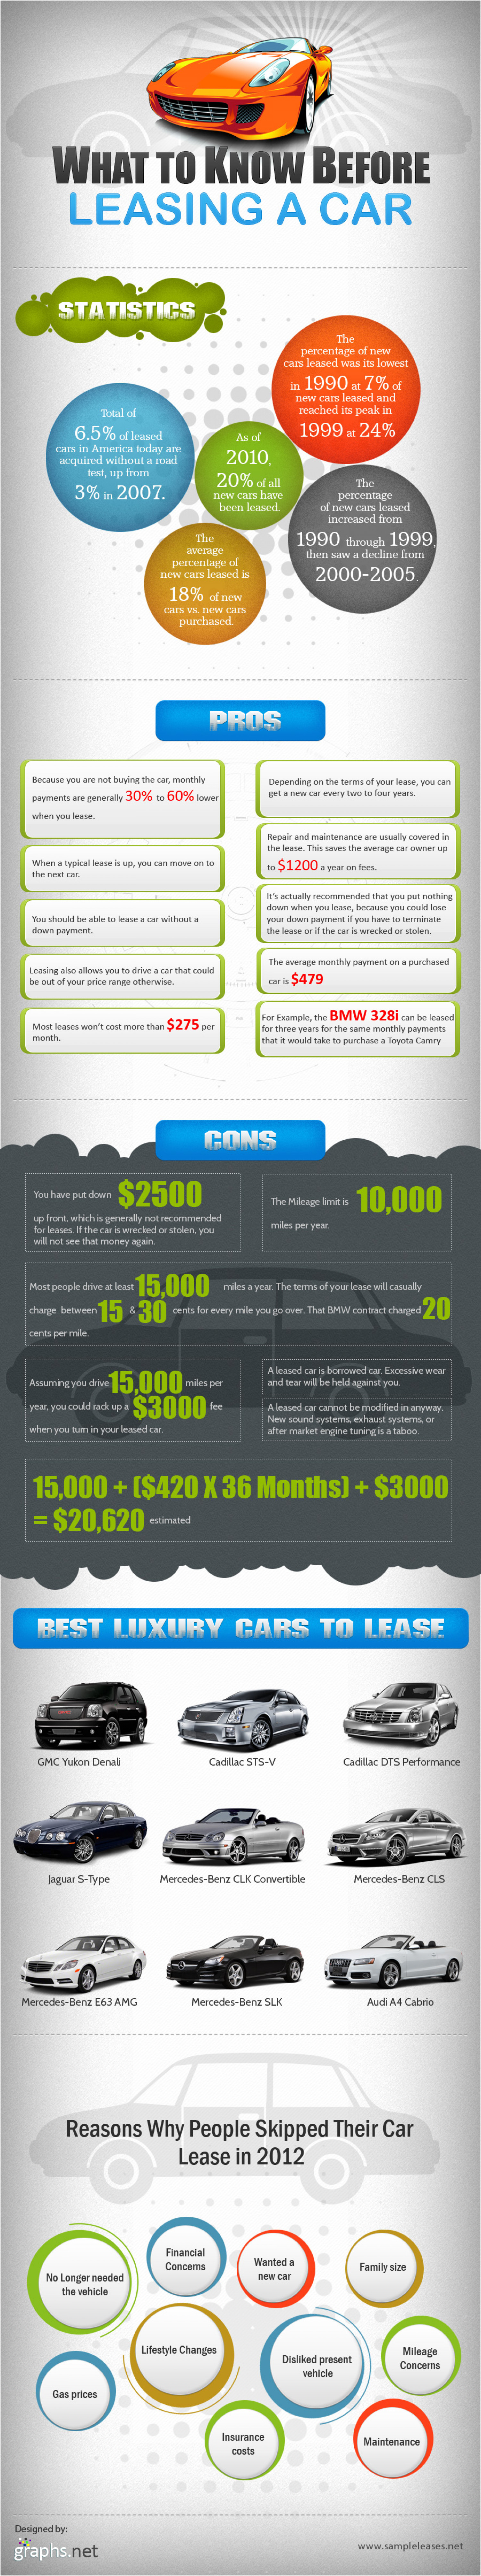 What to Know Before Leasing a Car  Infographic